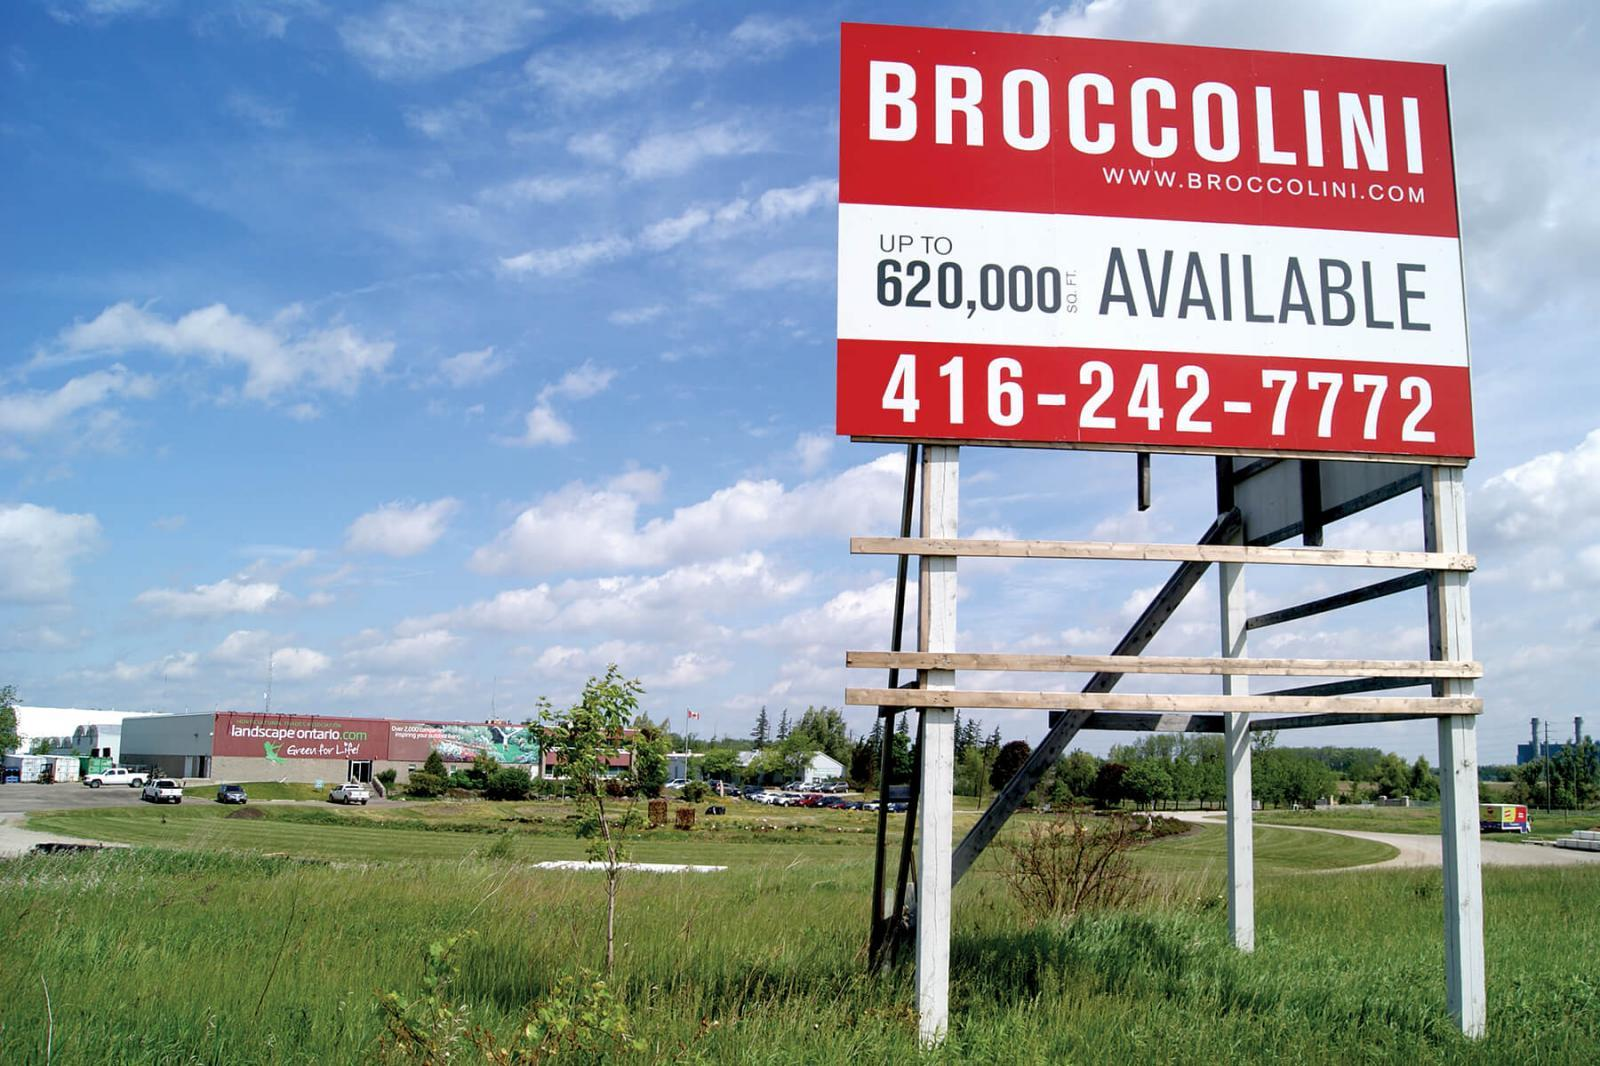 It became official on May 28, when Landscape Ontario sold 24.16 acres of excess property to Broccolini, a development and construction company.